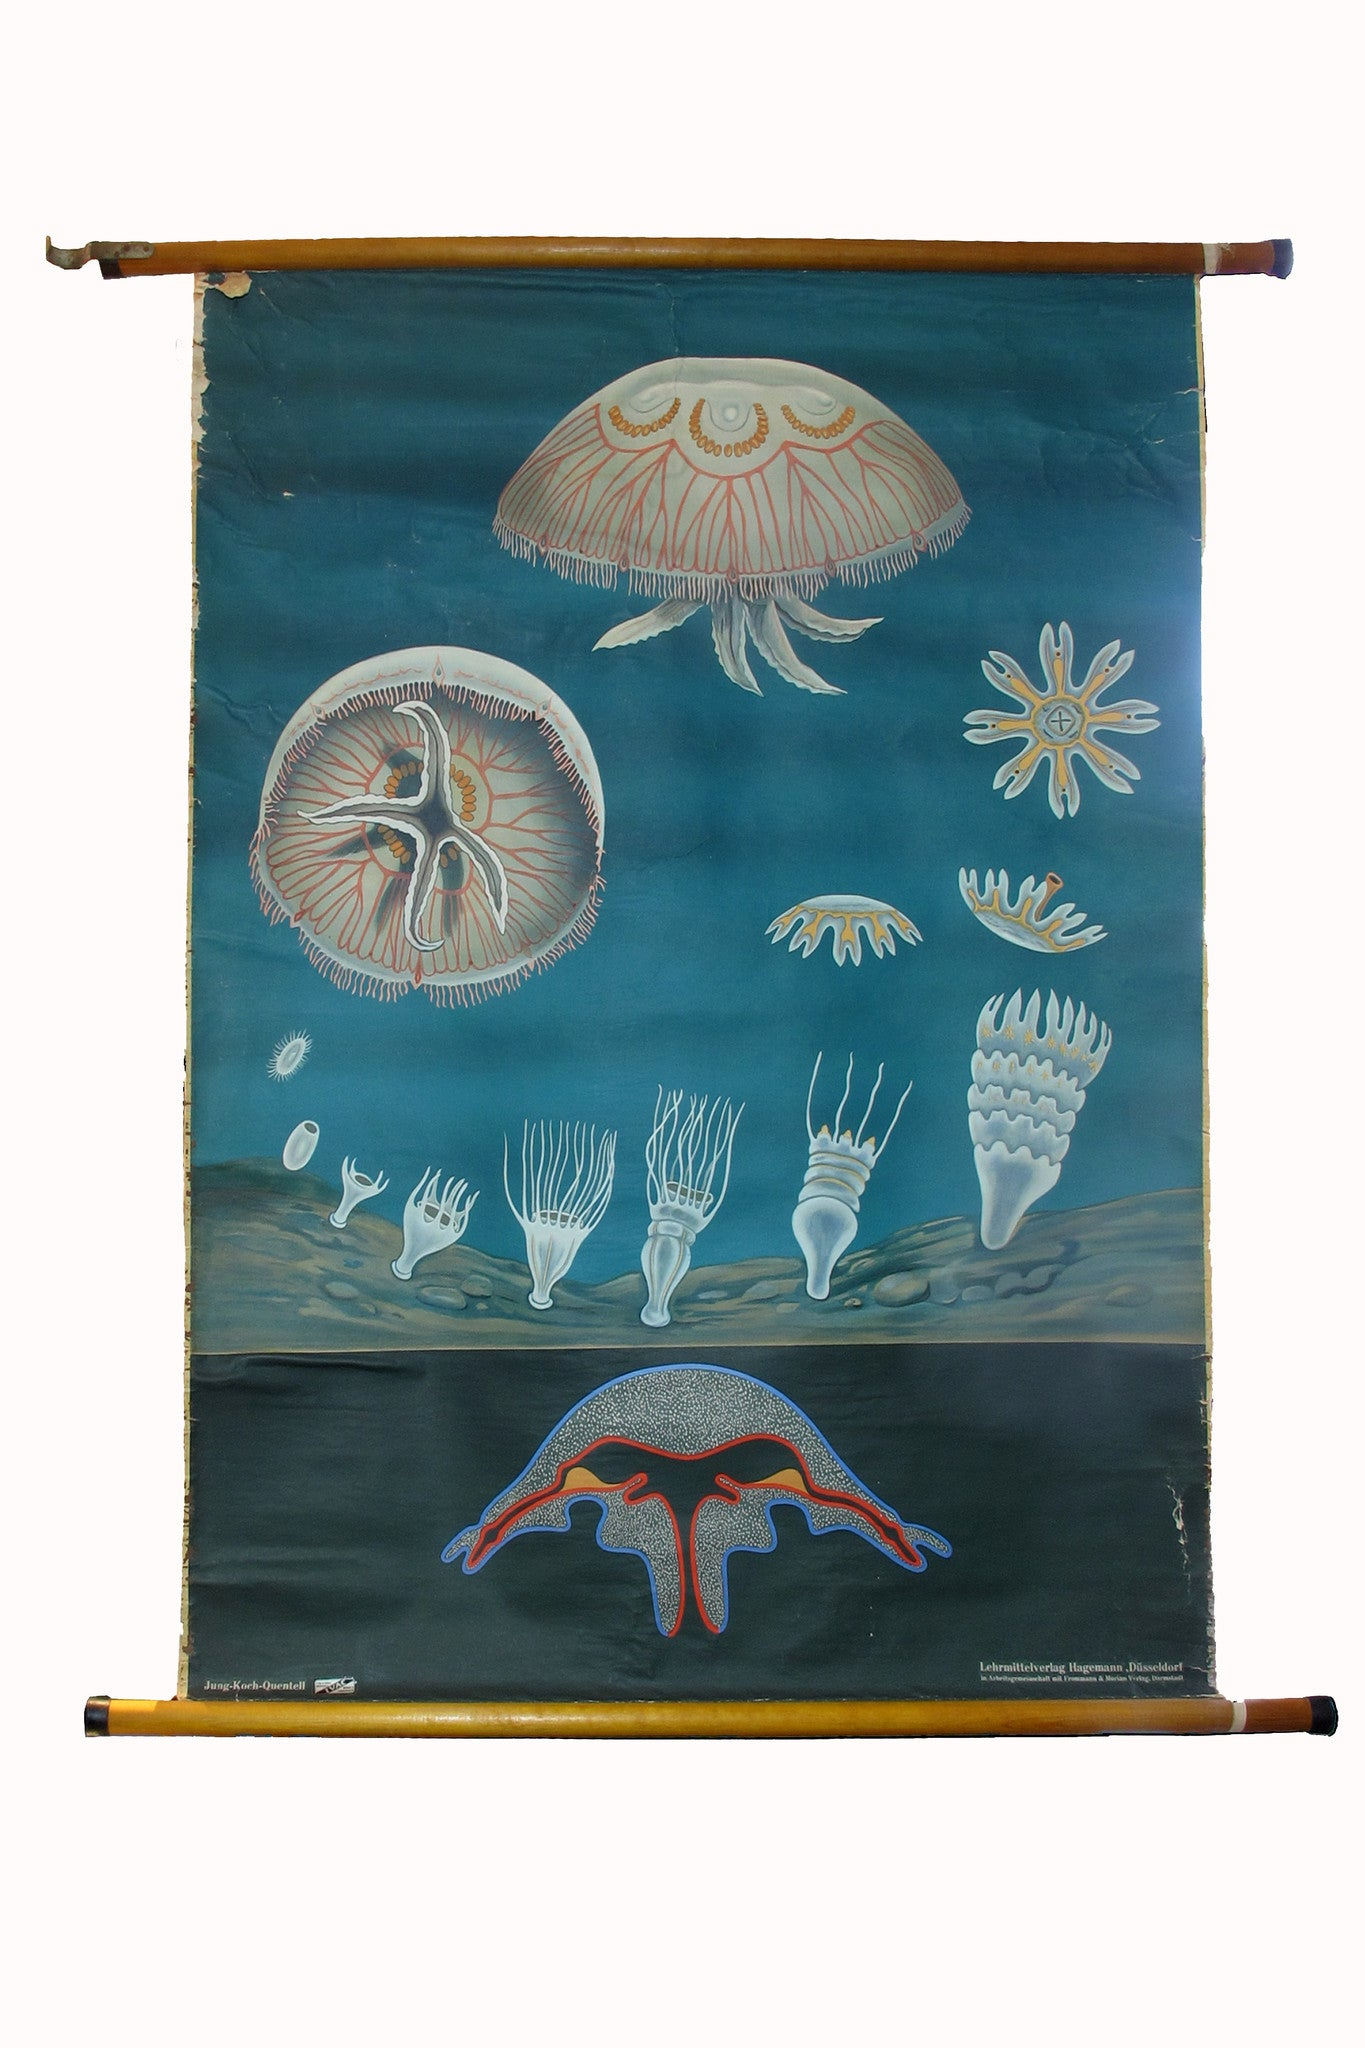 X Large linen backed wall chart of jellyfish , early 20th century.